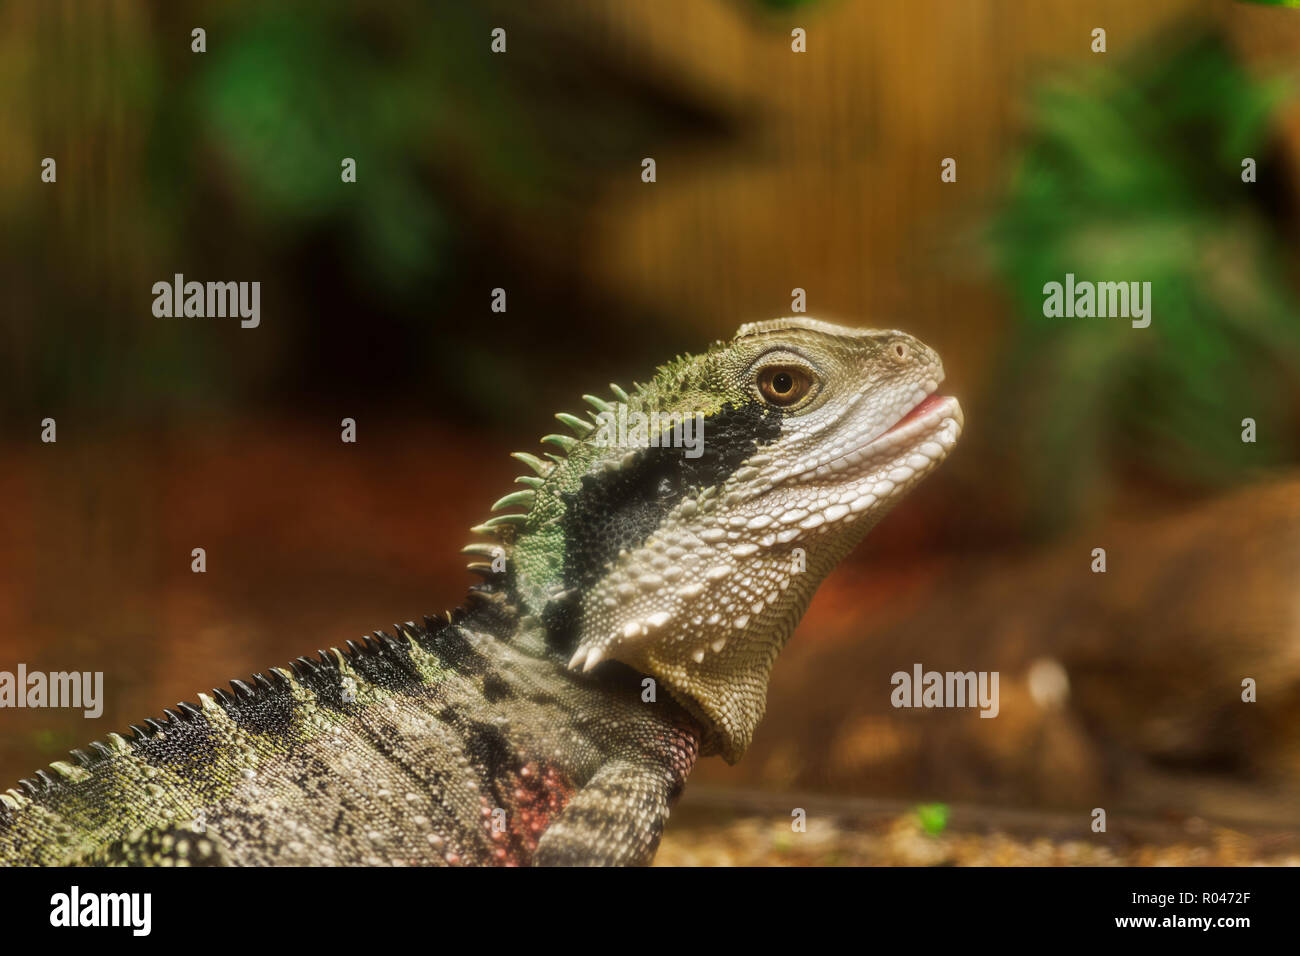 Lateral view of a terrarium agame in front of blurred background. - Stock Image